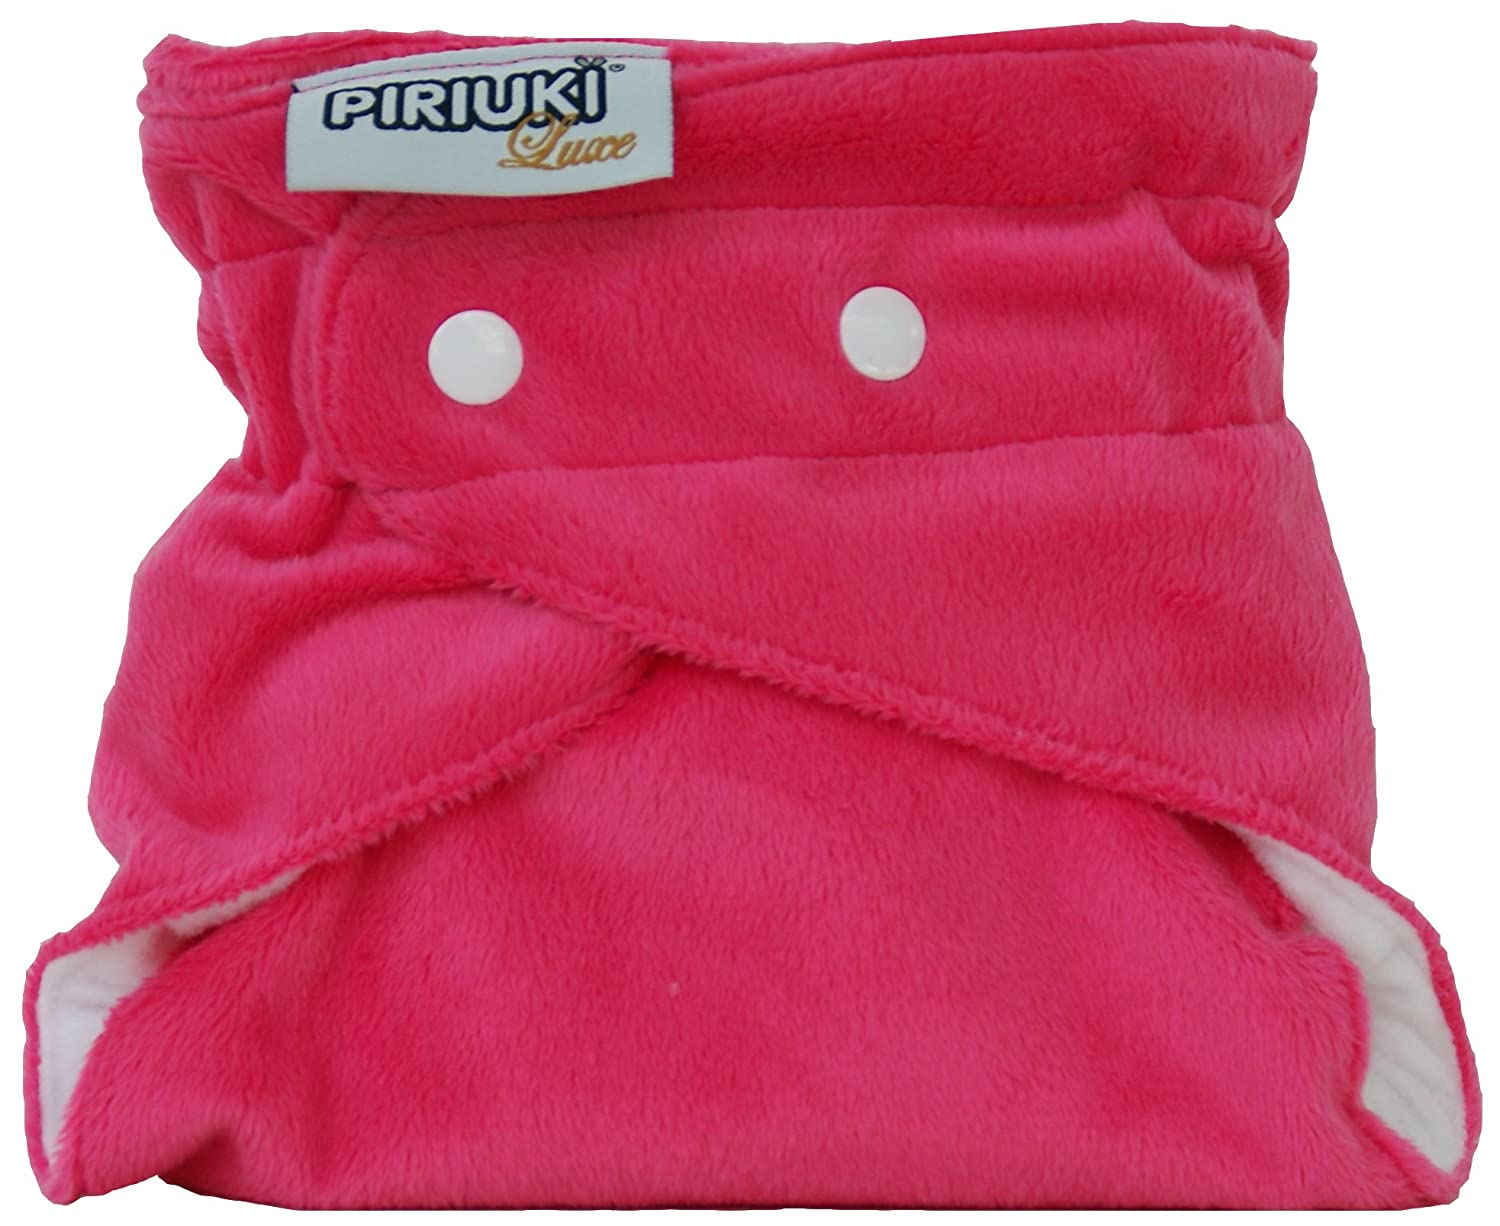 Piriuki Luxe Reusable Pocket Diaper (Pink) pu64734